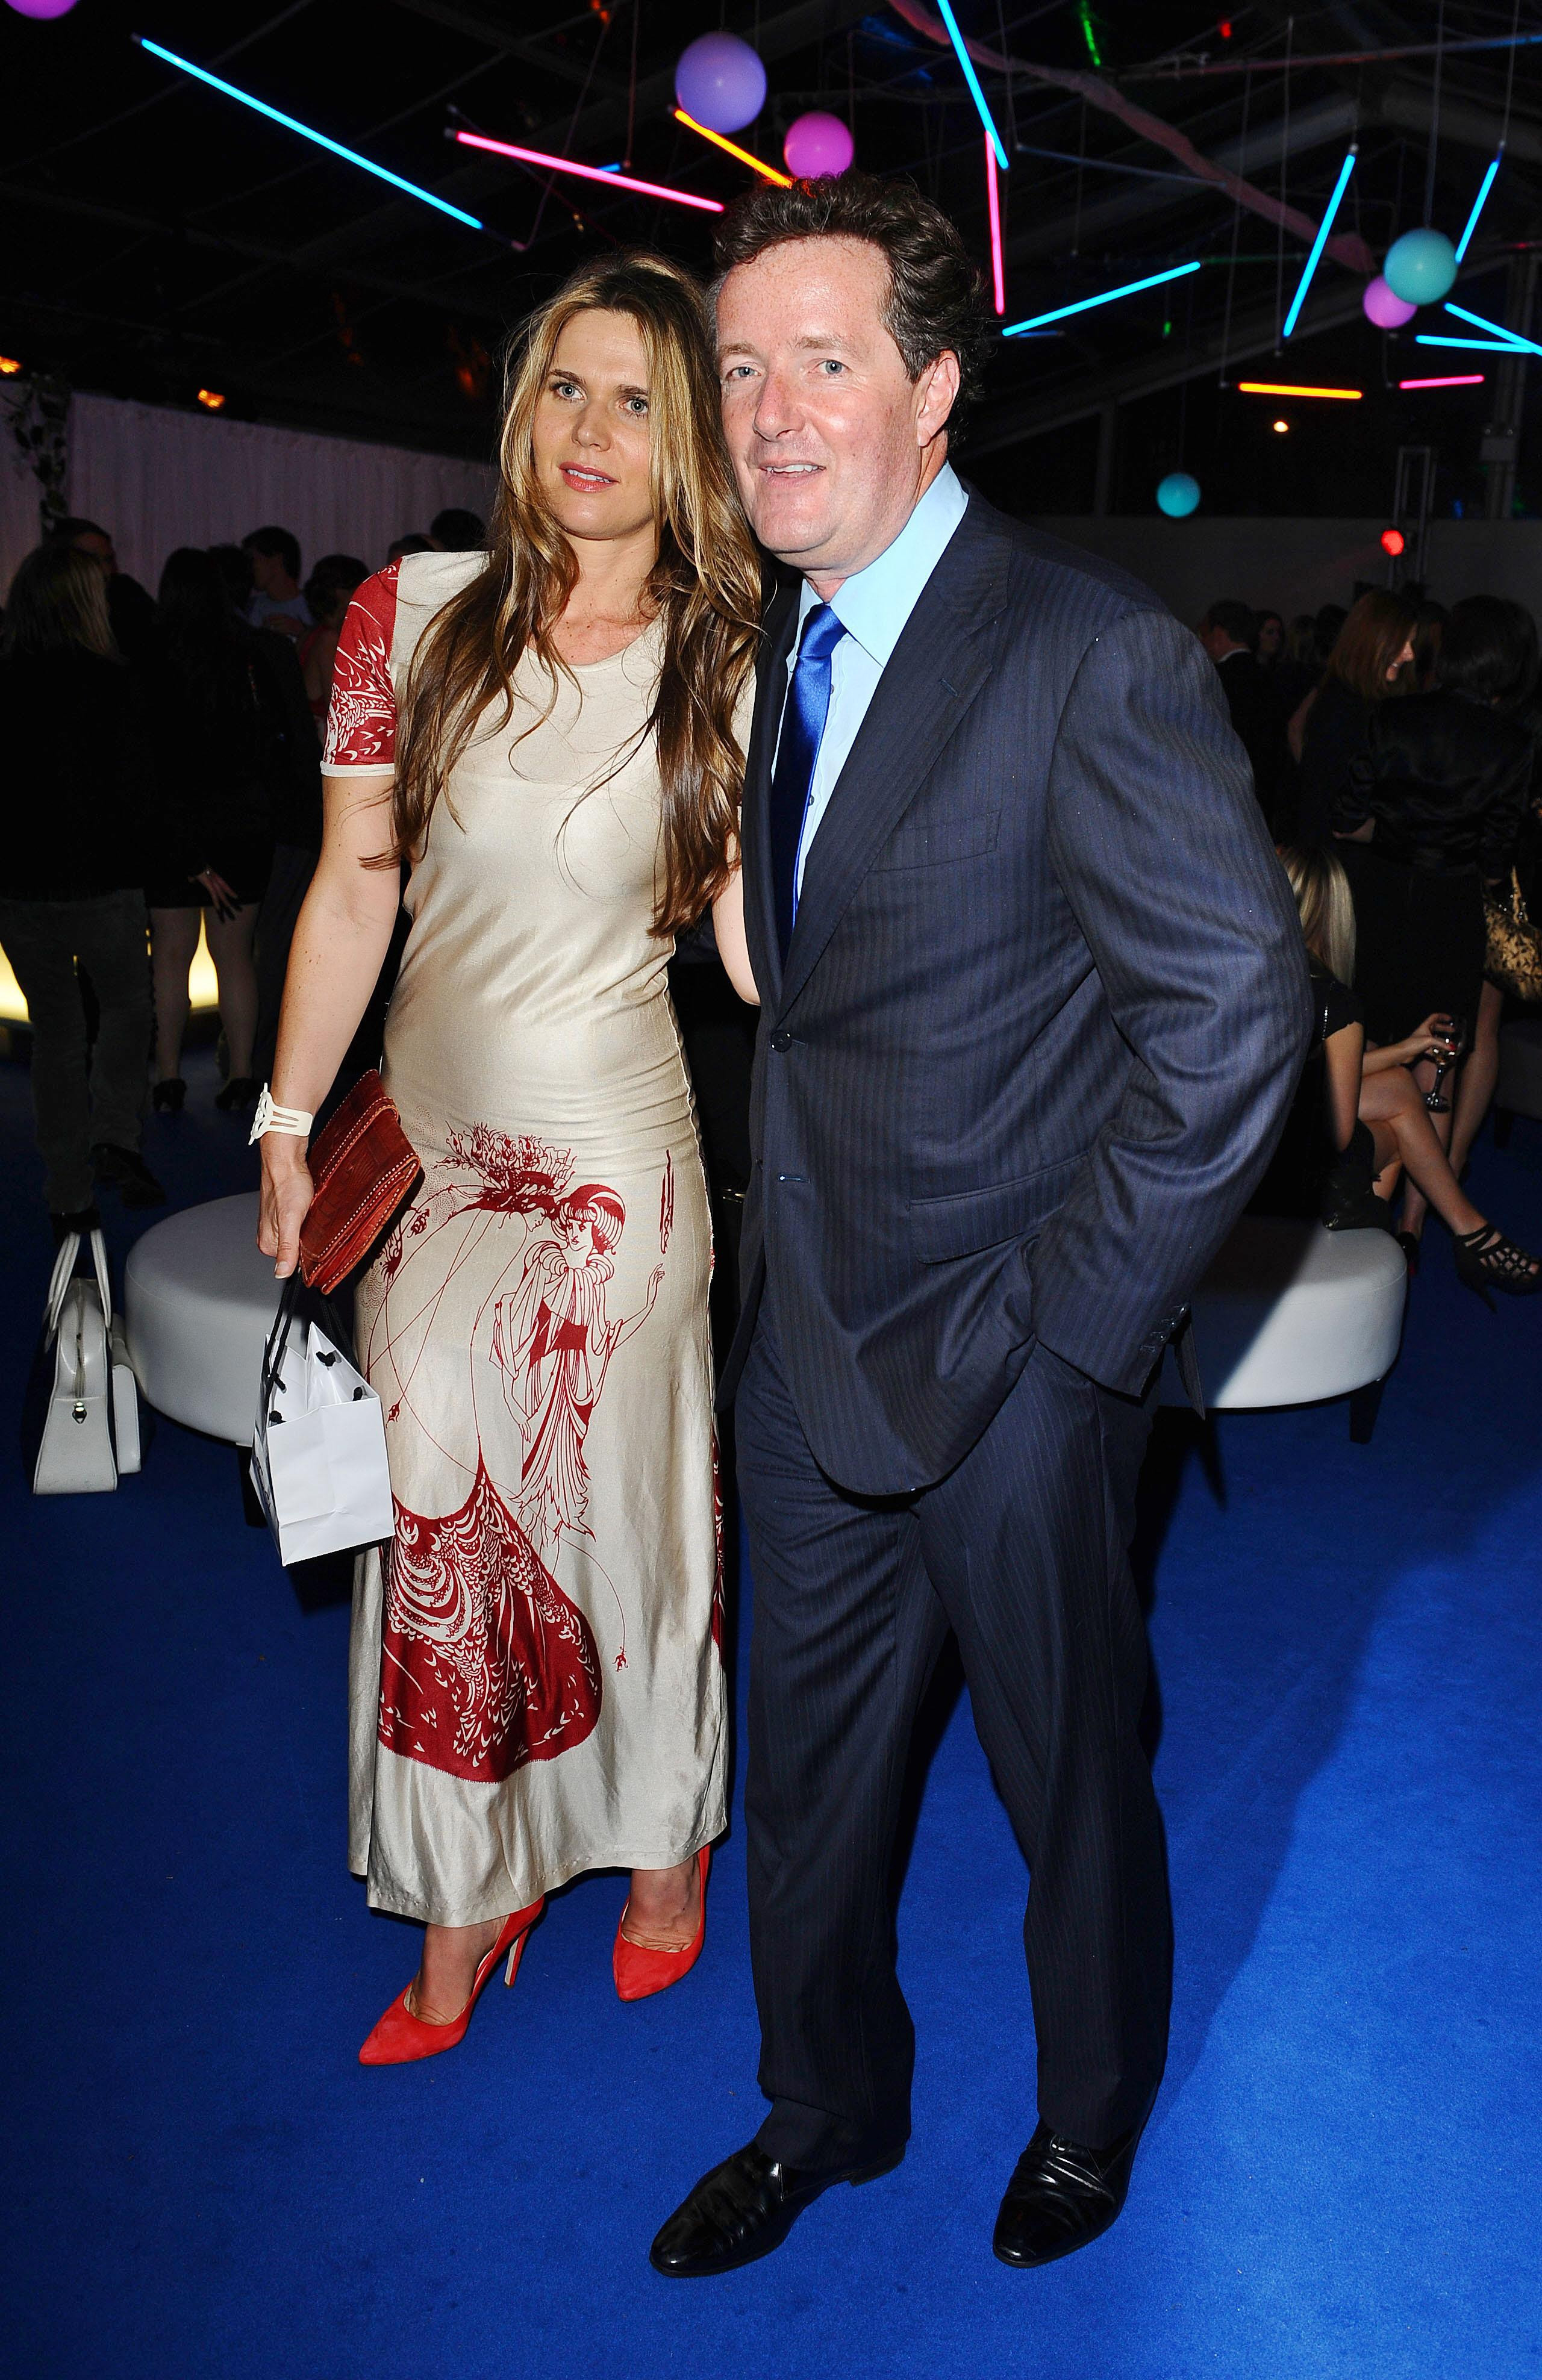 Celia Walden and Piers Morgan at the Glamour Women of the Year Awards in Berkeley Square, London.